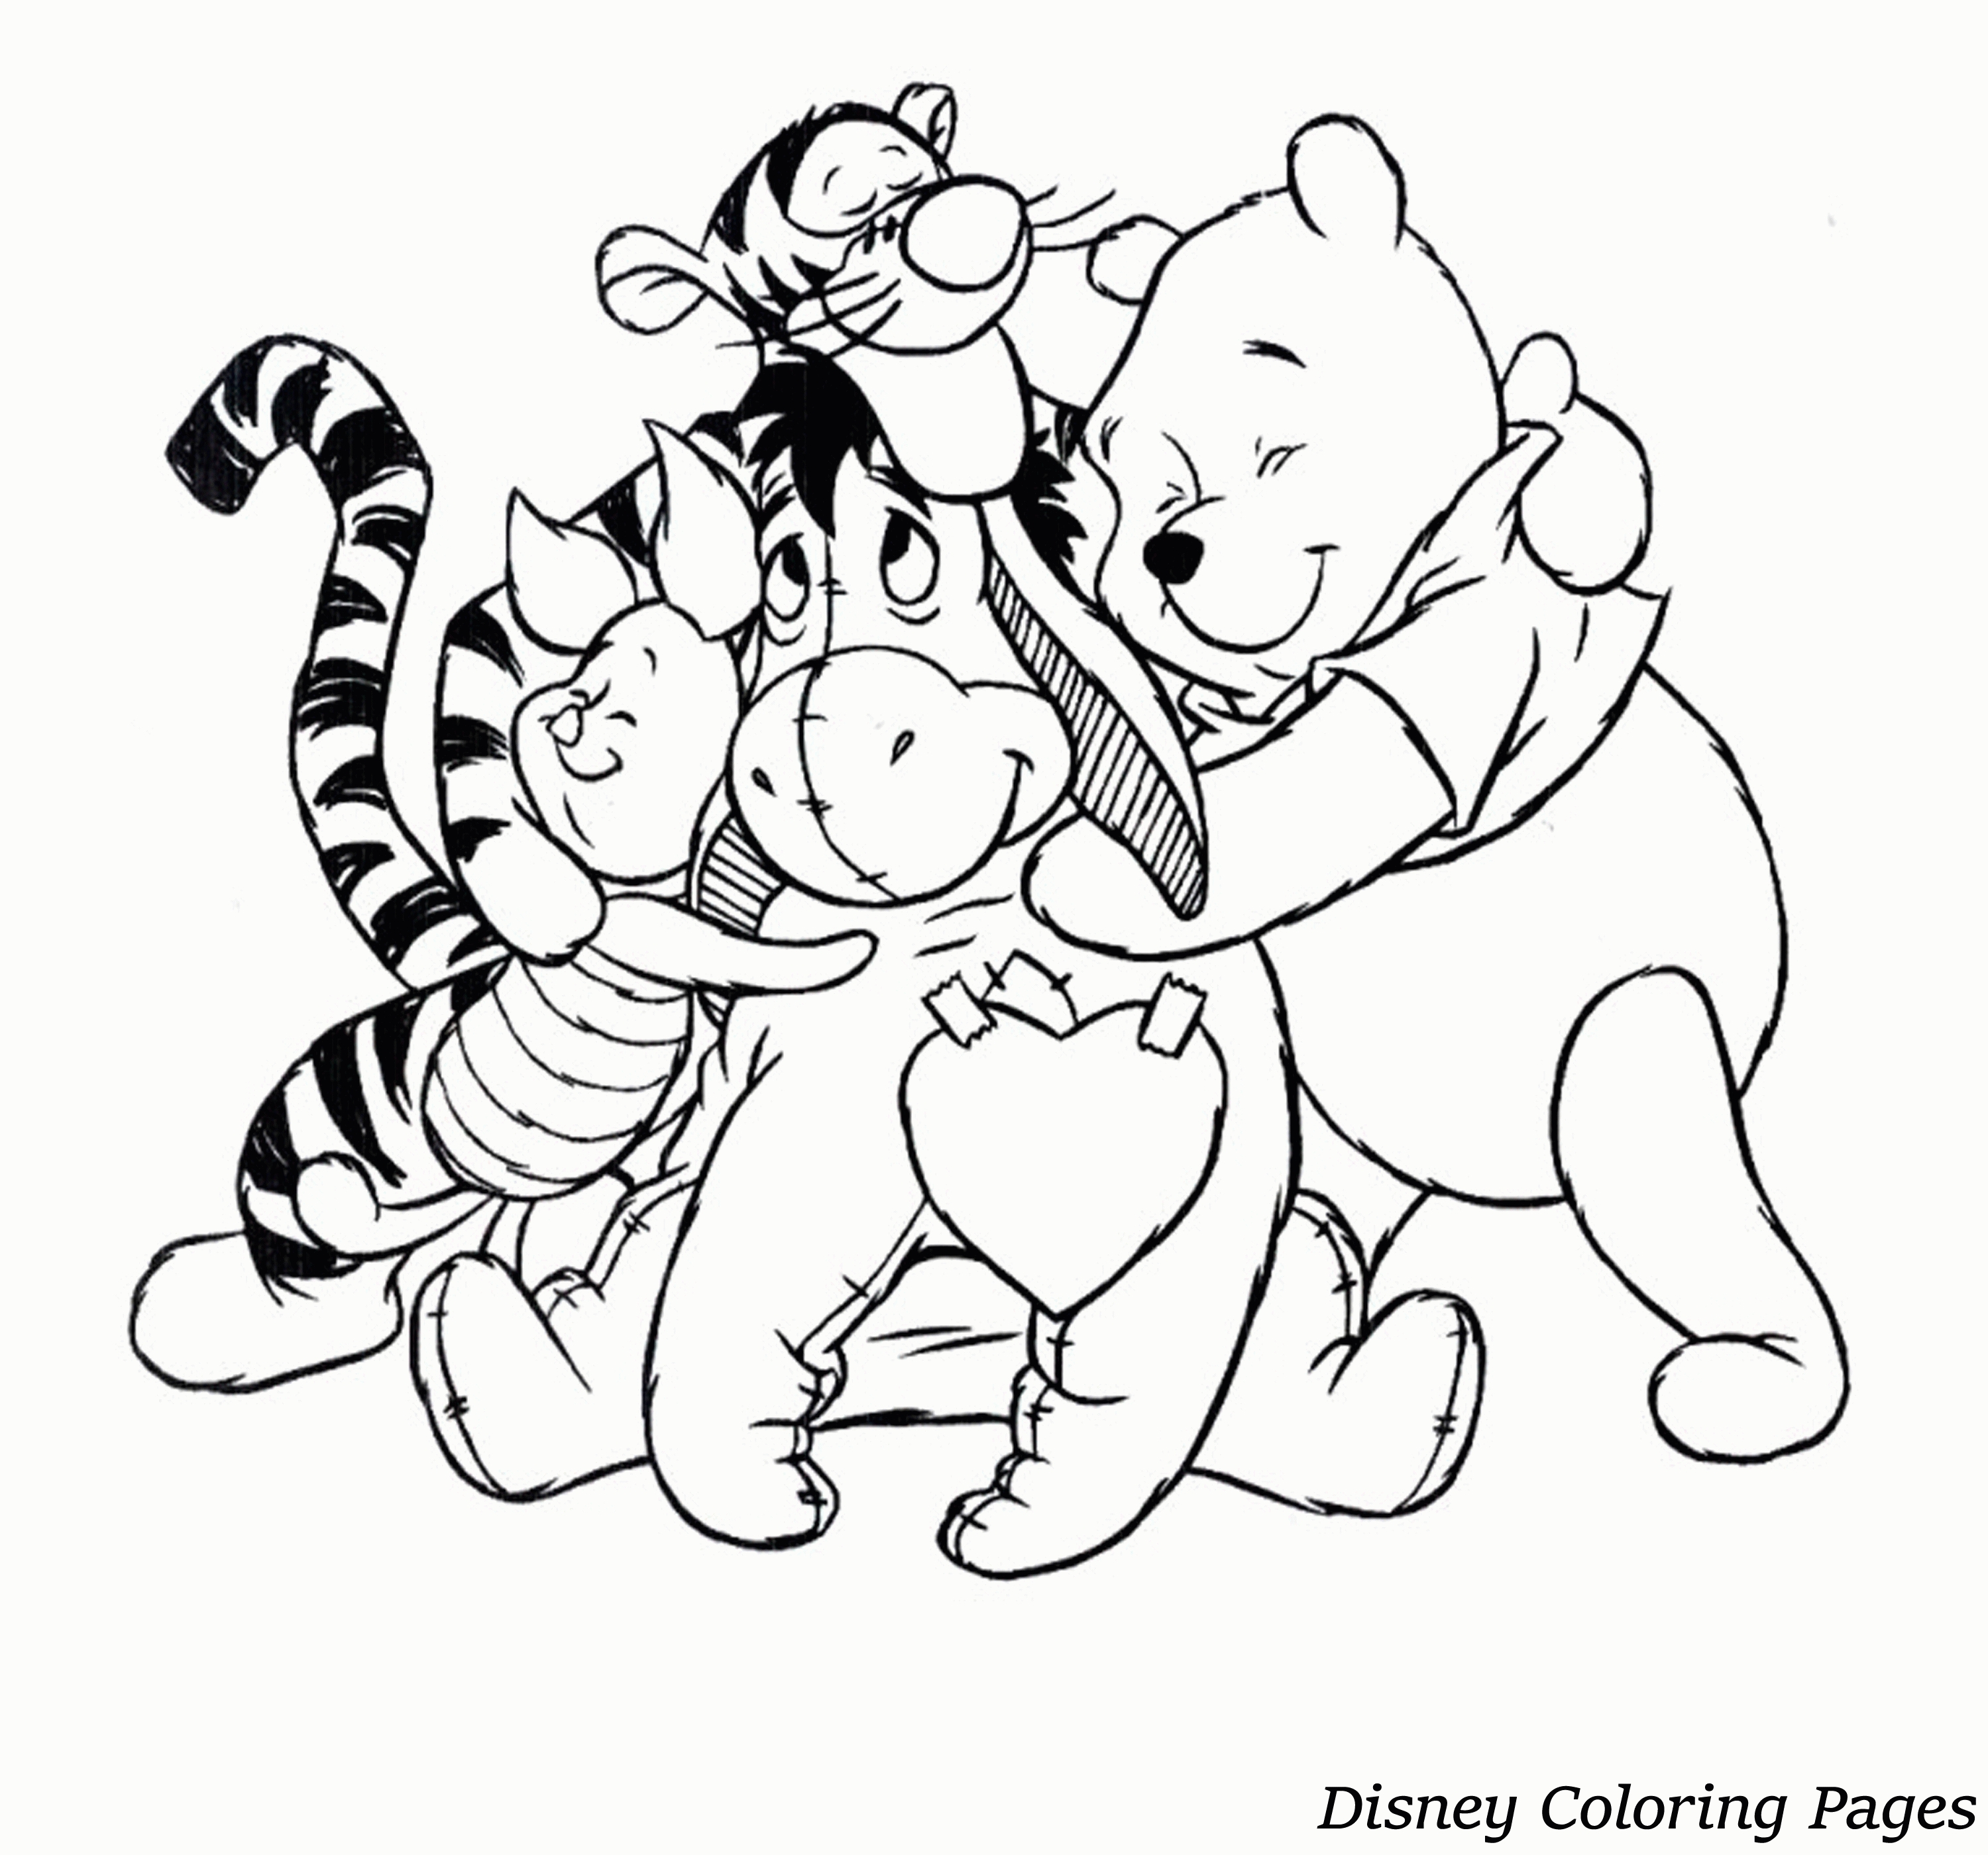 disney coloring pages for adults - disney coloring pages for toddlers